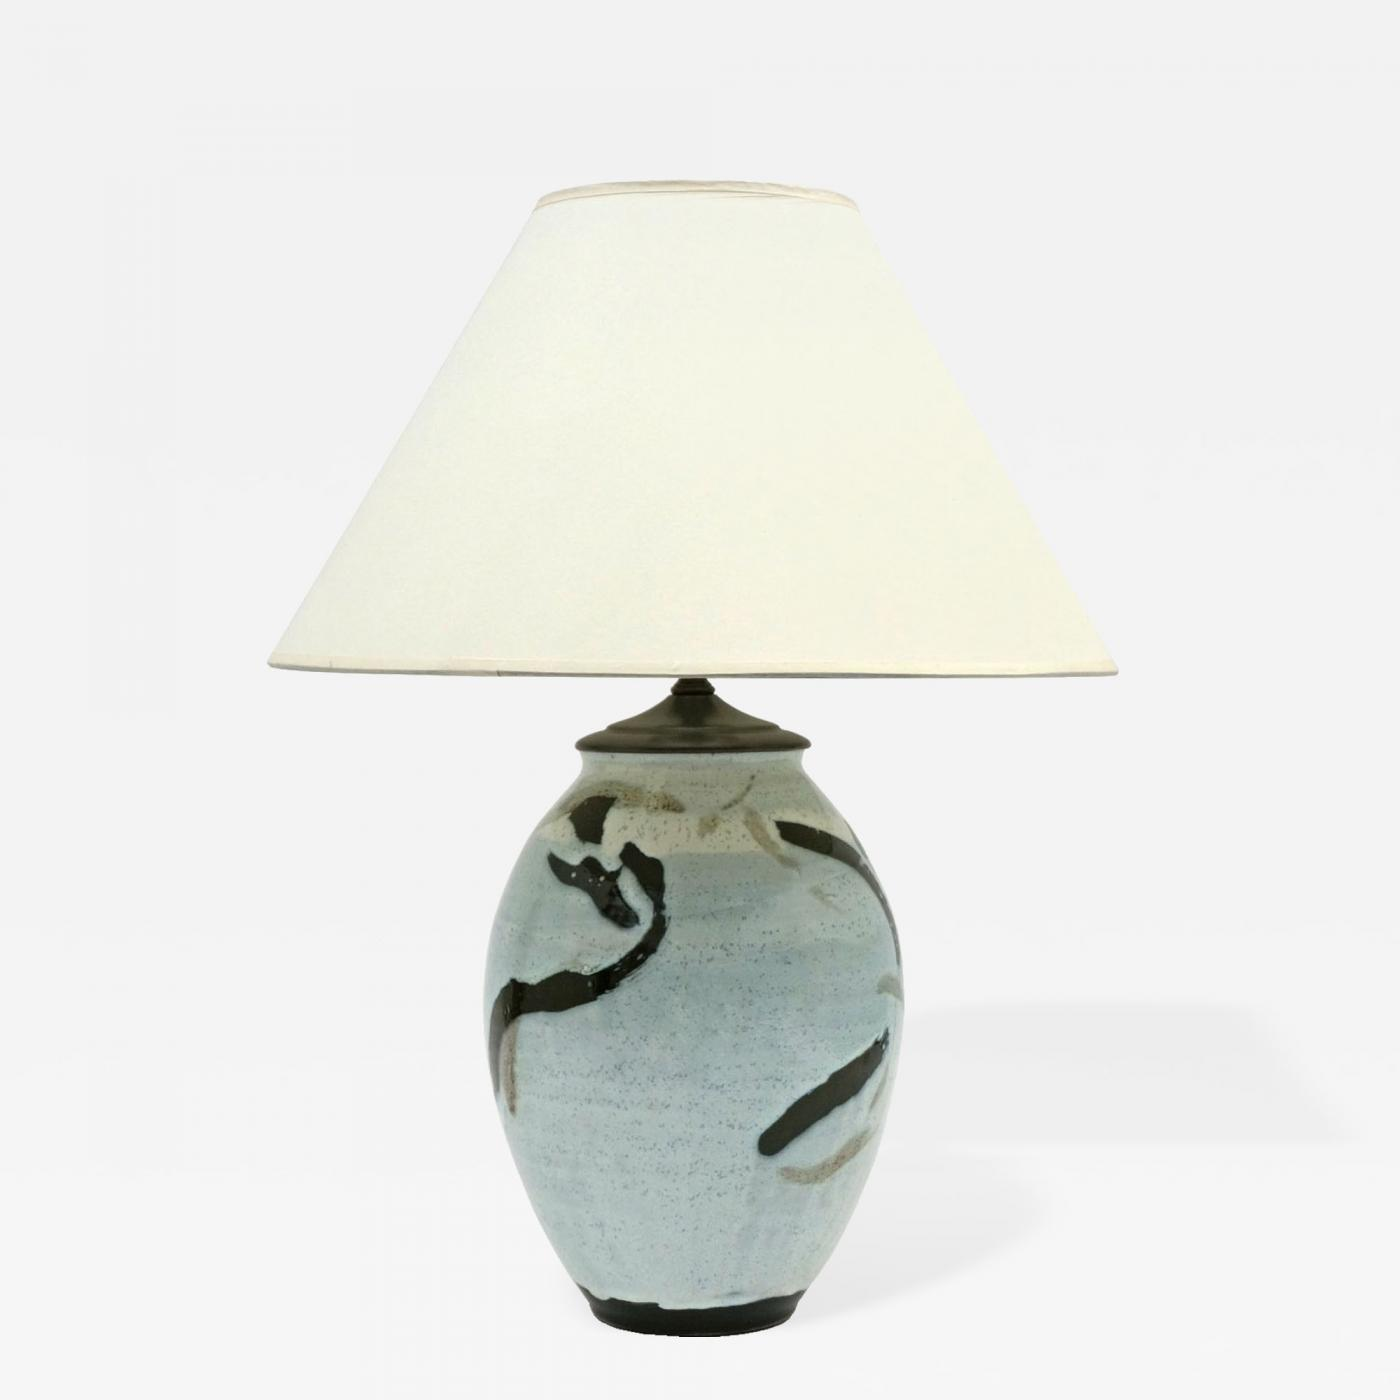 Abstract Ceramic Table Lamp Light Blue Black And White